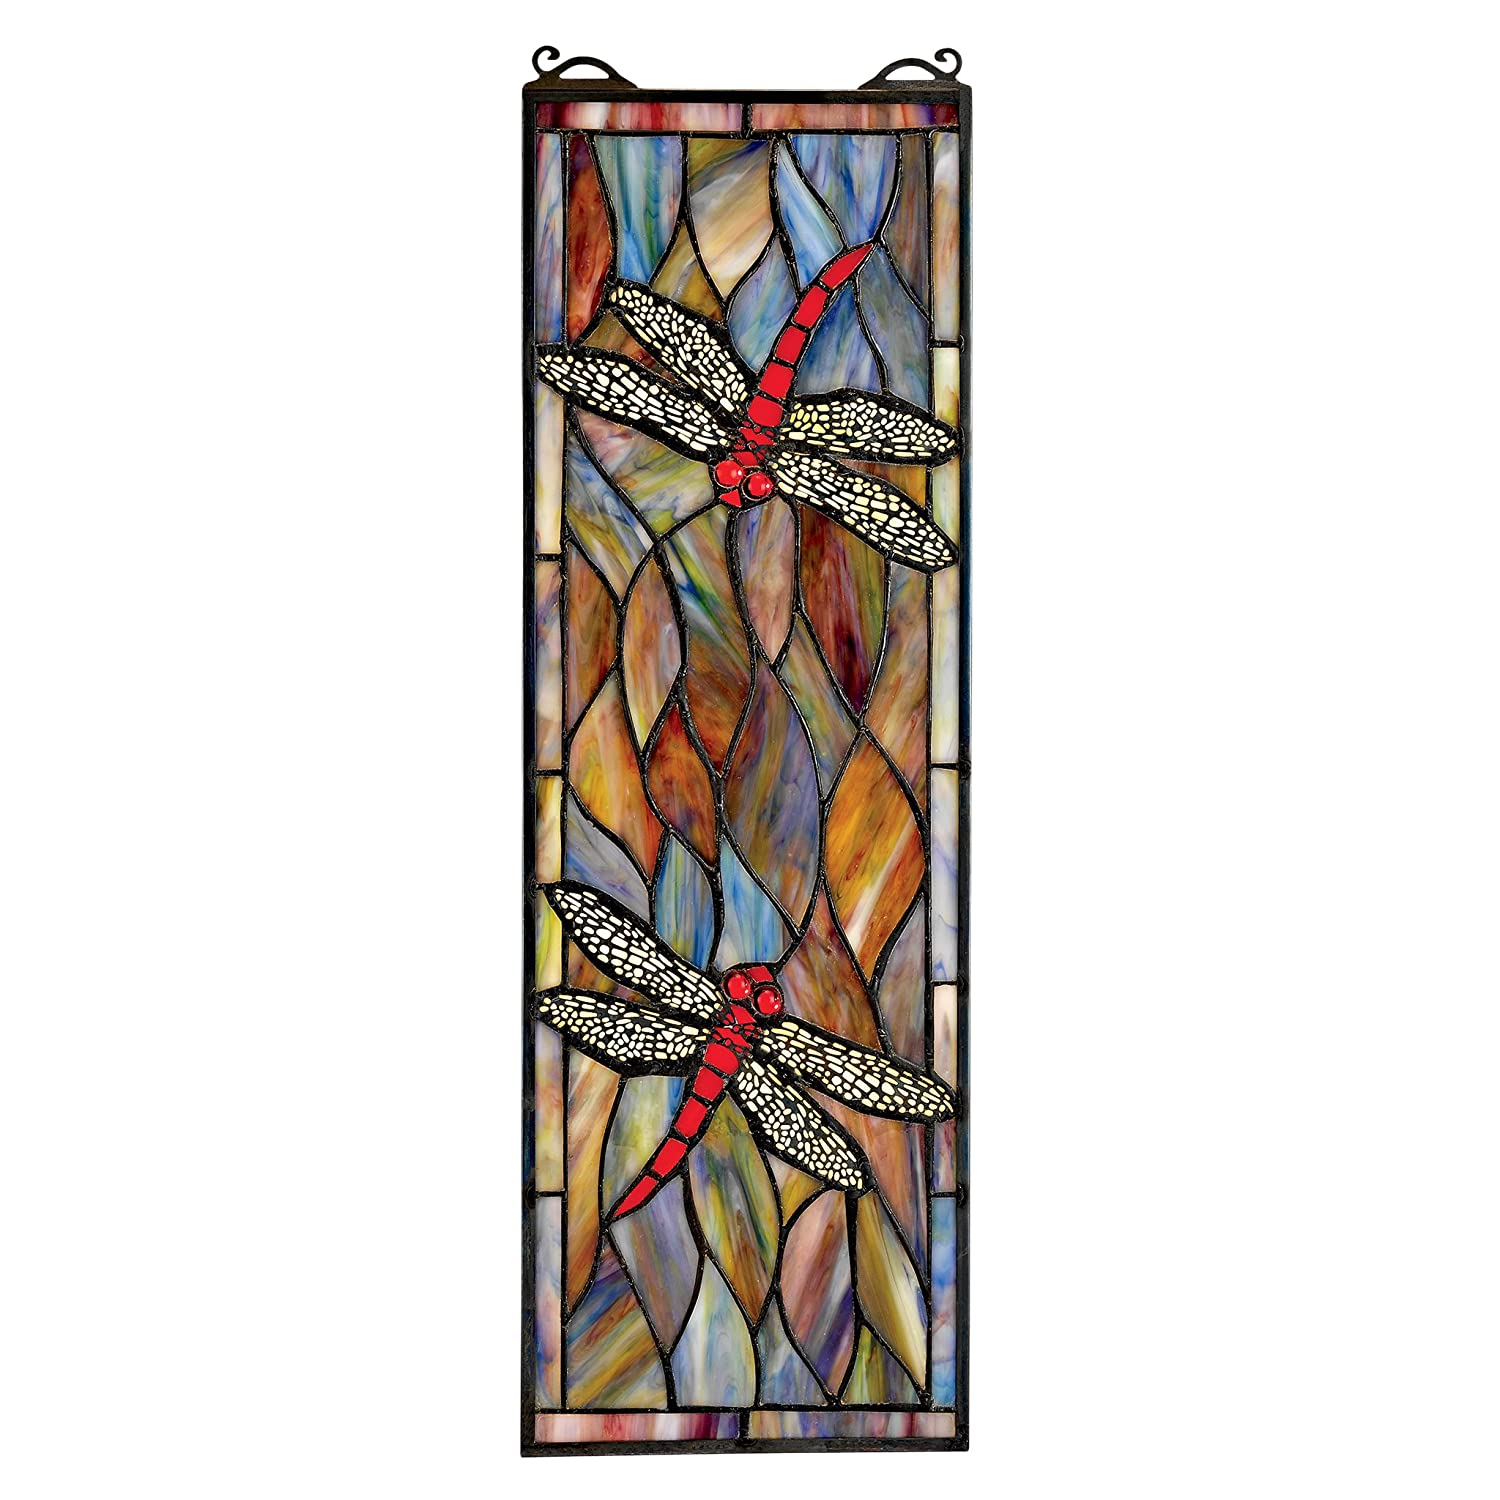 Design Toscano Dragonfly Stained Glass Window Hanging Panel, 53 cm, Stained Glass, Full Color TF53502